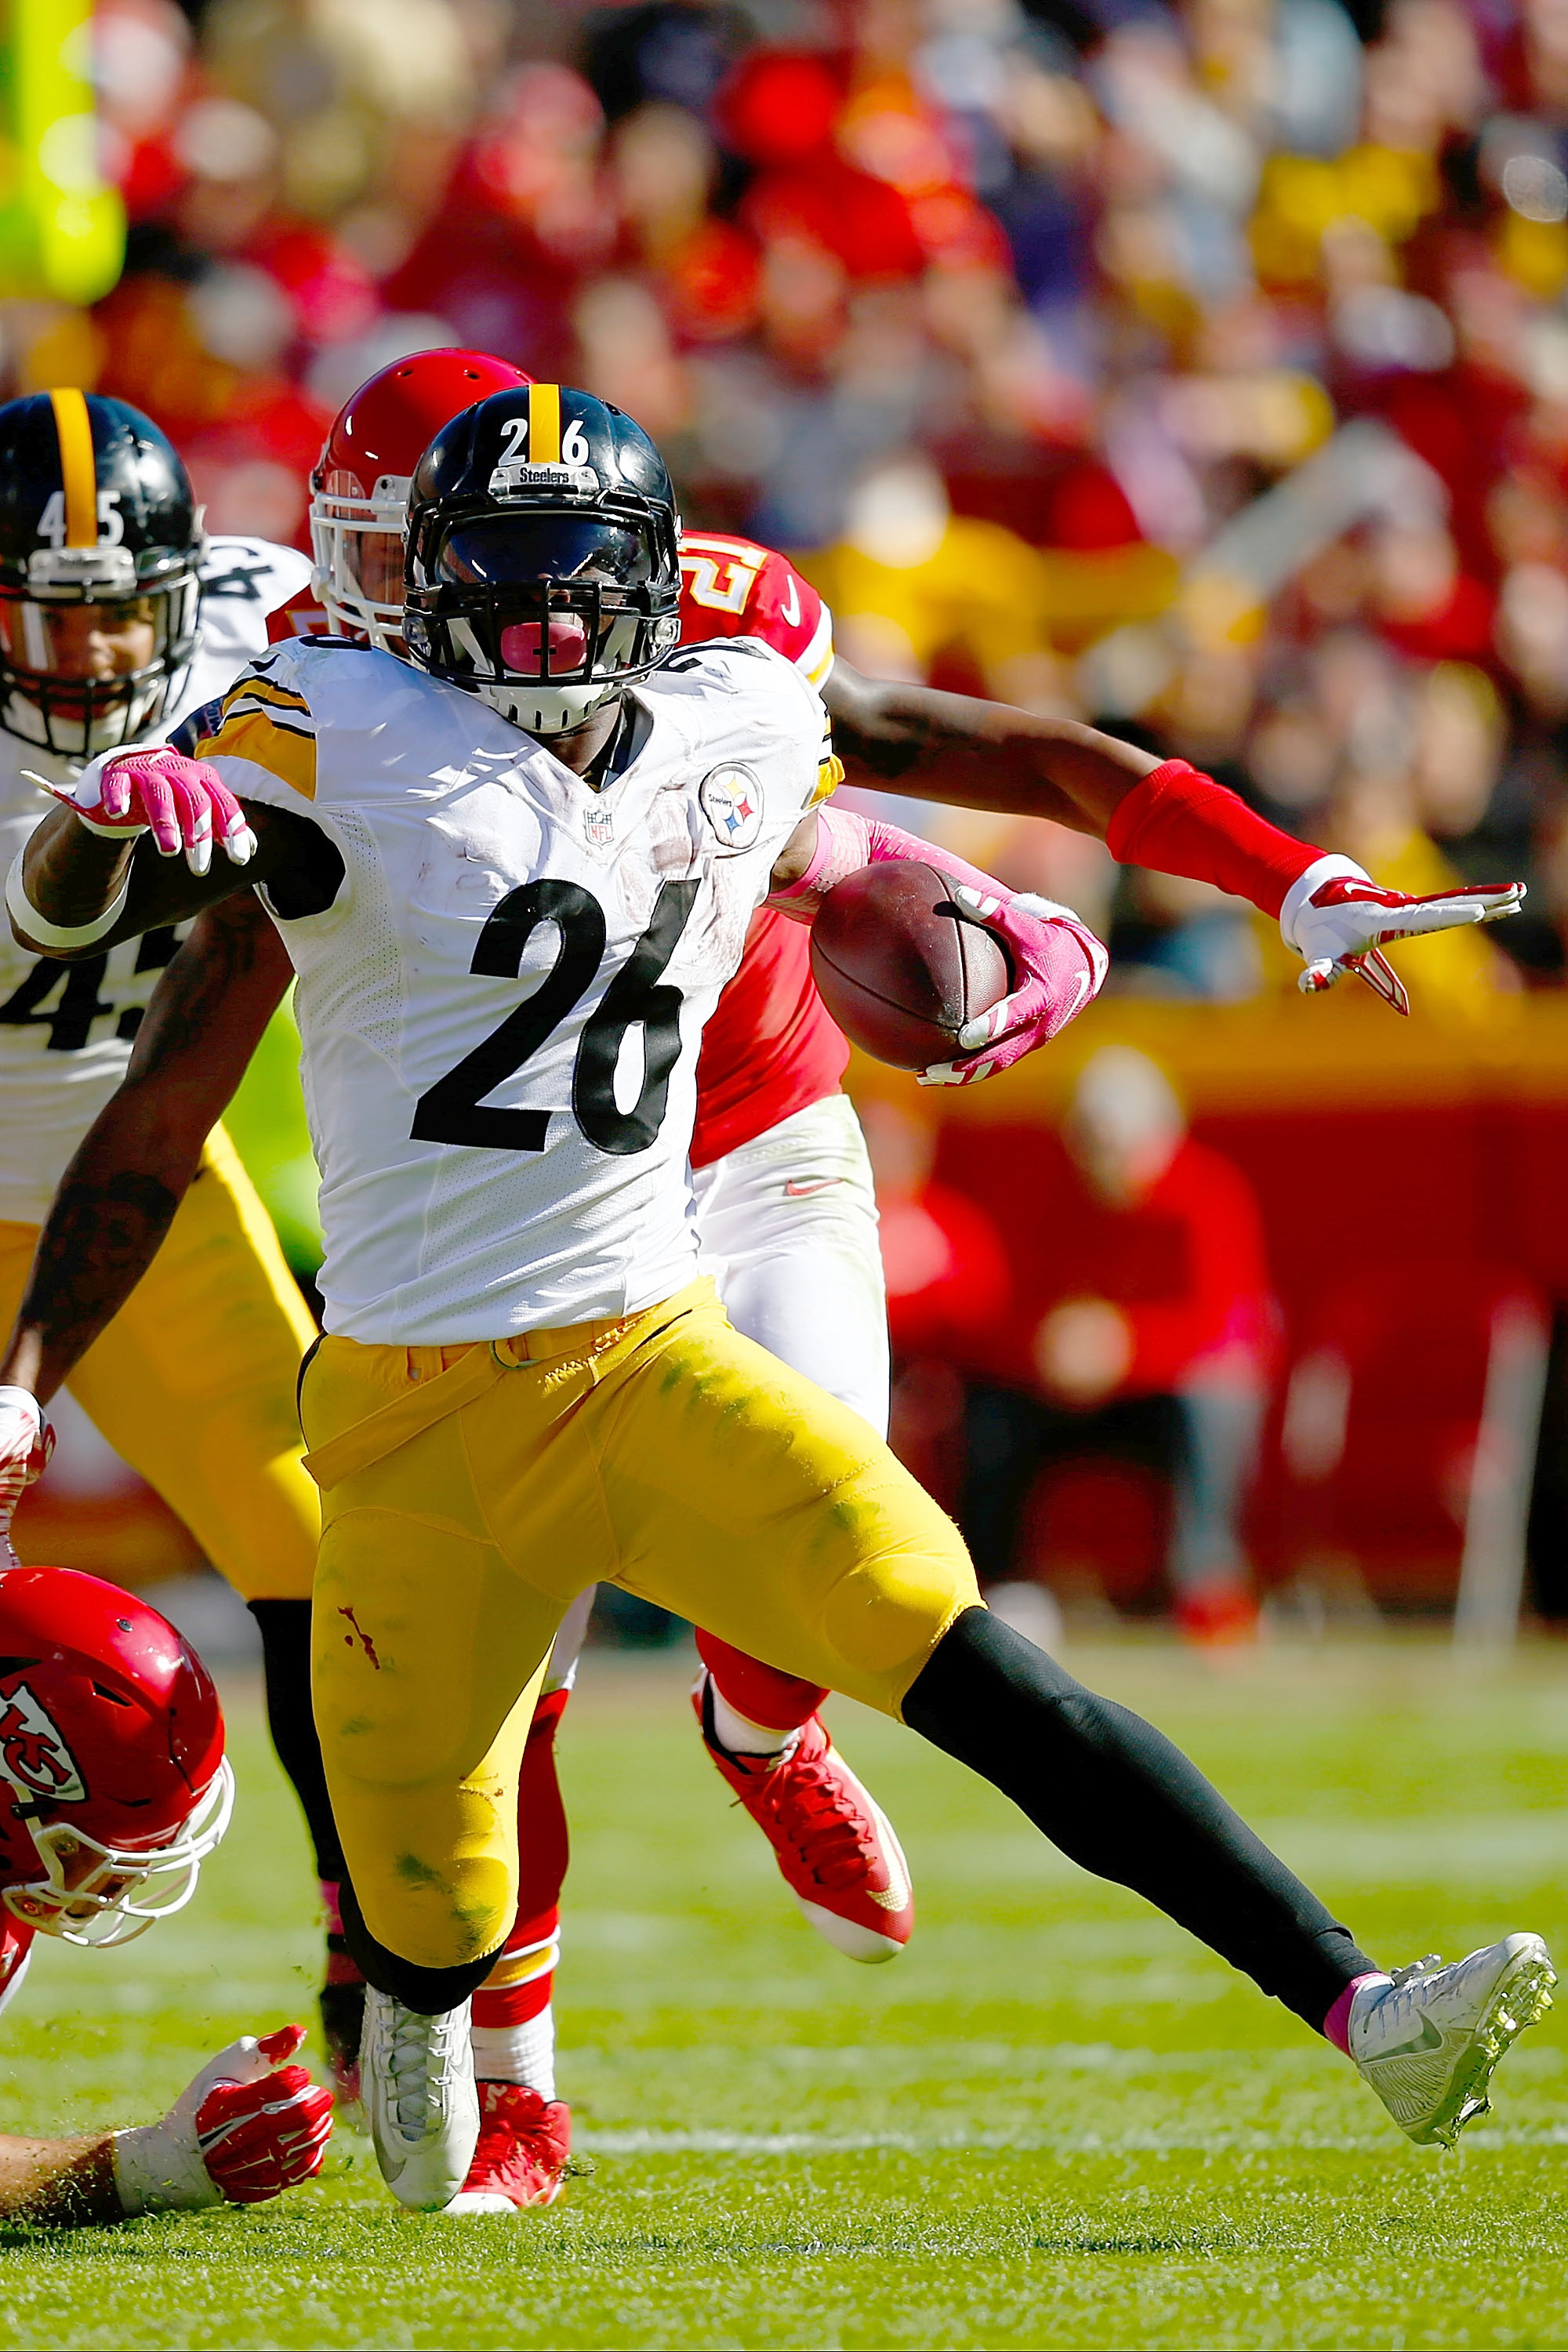 Le'Veon Bell stayed on the ground after a hit on the Pittsburgh sideline. (Getty)